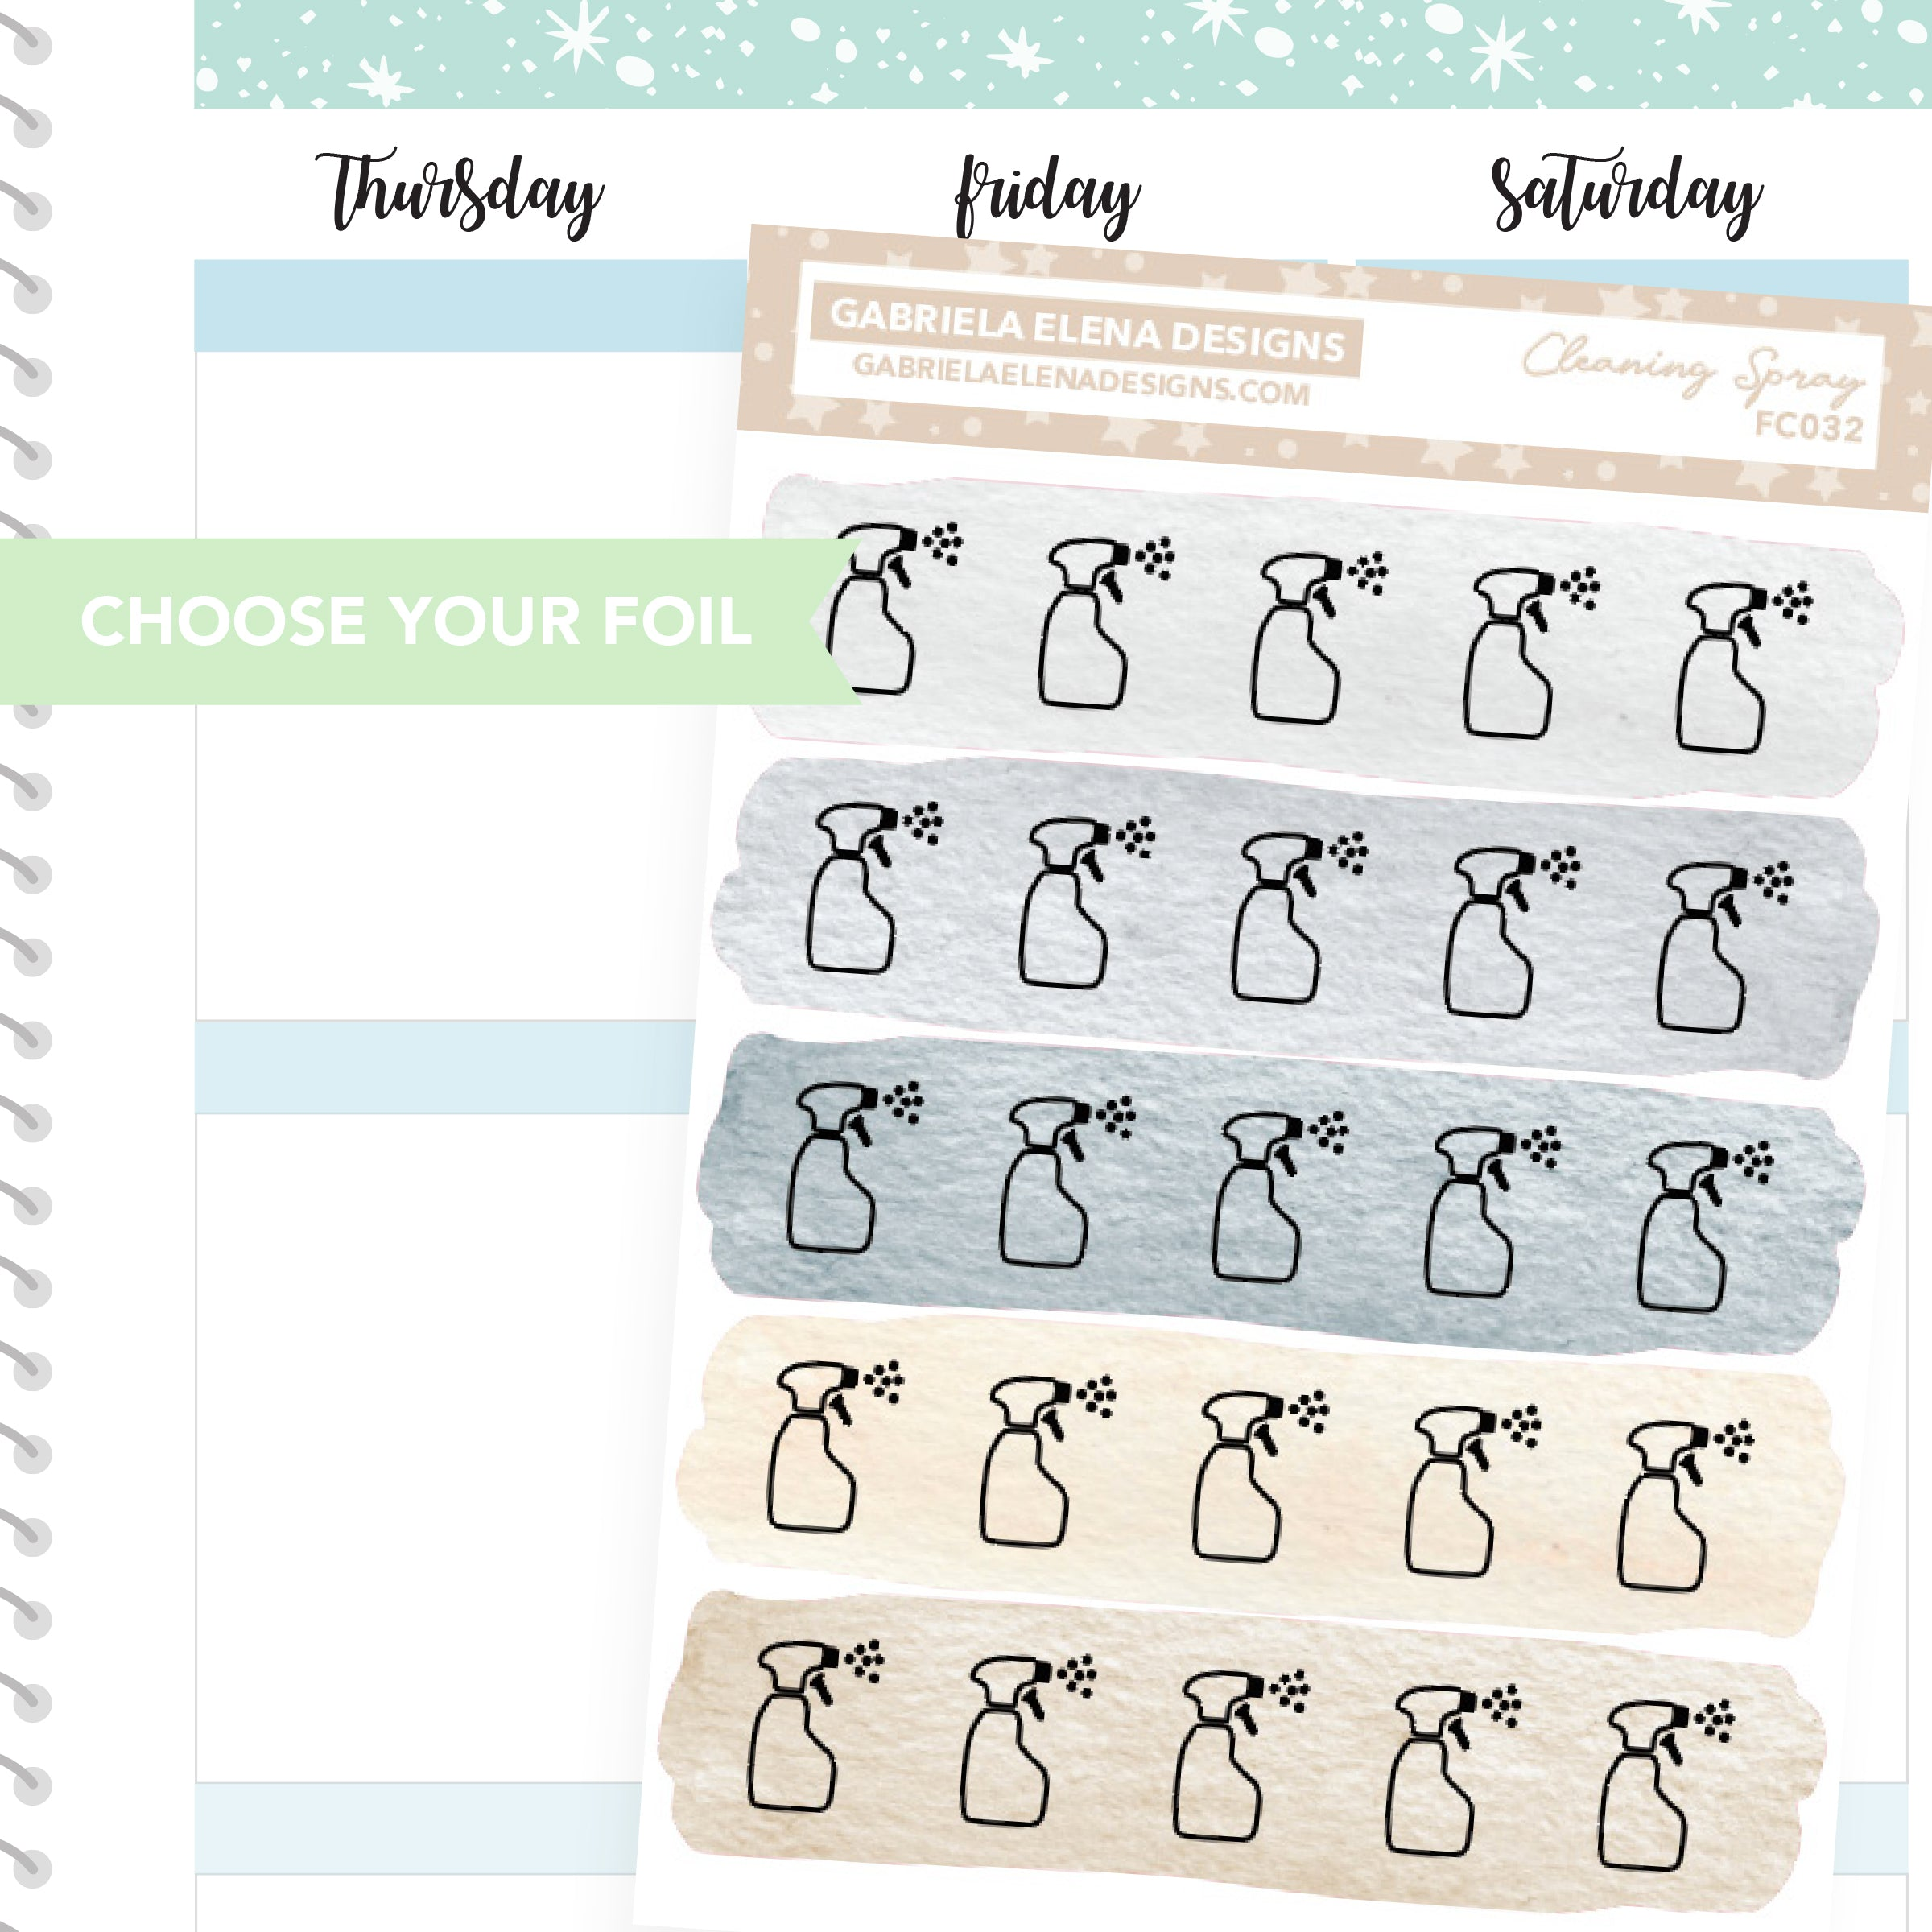 Cleaning Spray / FOIL Stickers / Choose Your Foil / Neutrals